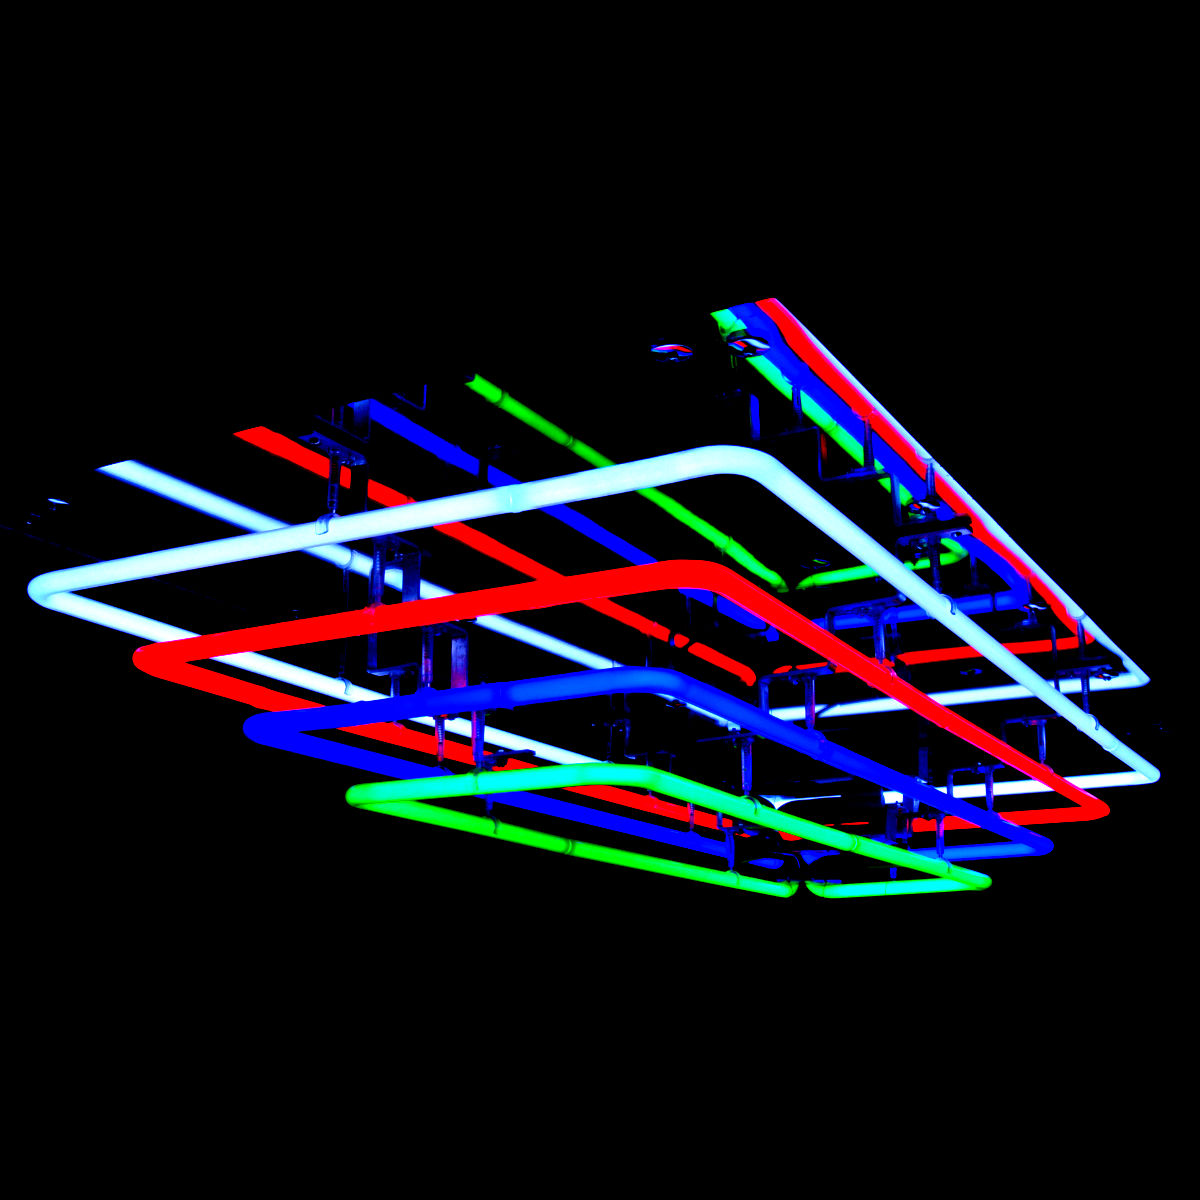 Cascading Stained Italian Glass Mirrored Neon Chandelier by John Barton - famous Neon Light Sculptor